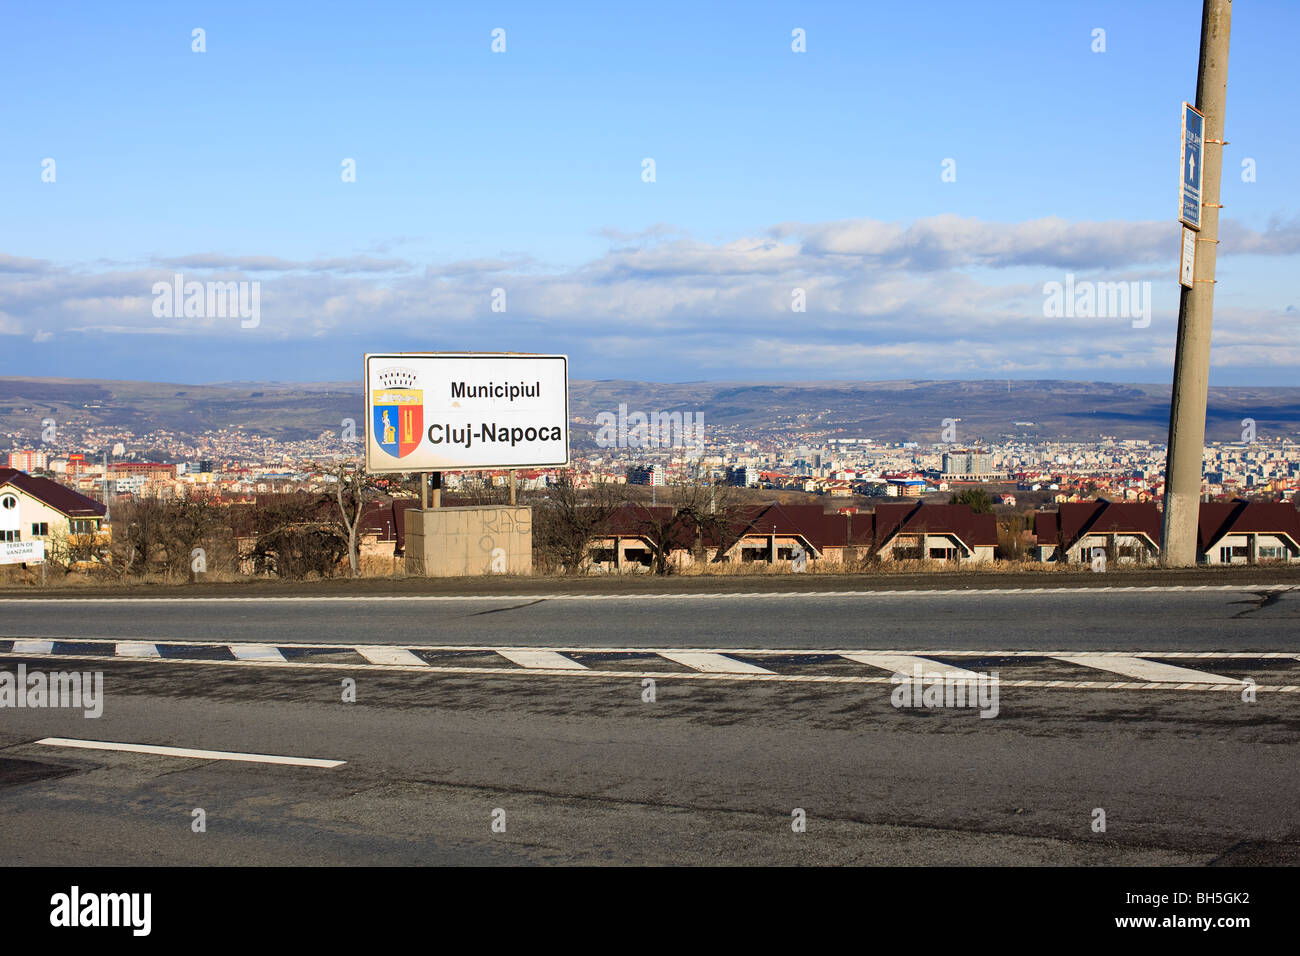 Cluj-Napoca city limits sign with the city in the background. - Stock Image